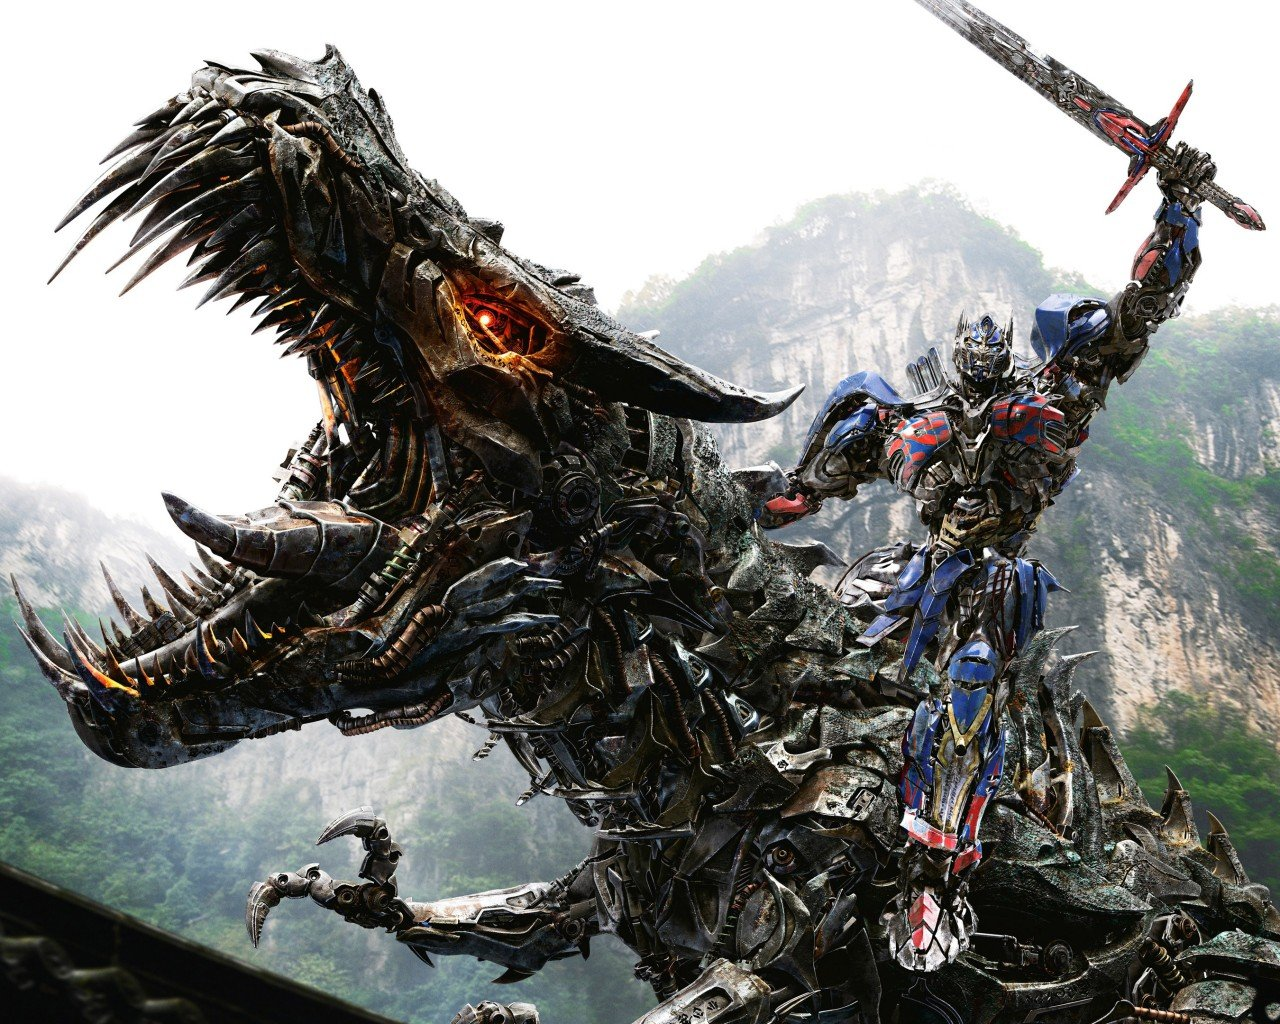 Grimlock Optimus Prime In Transformers 4 Age Of Extinction Wallpaper 1280x1024